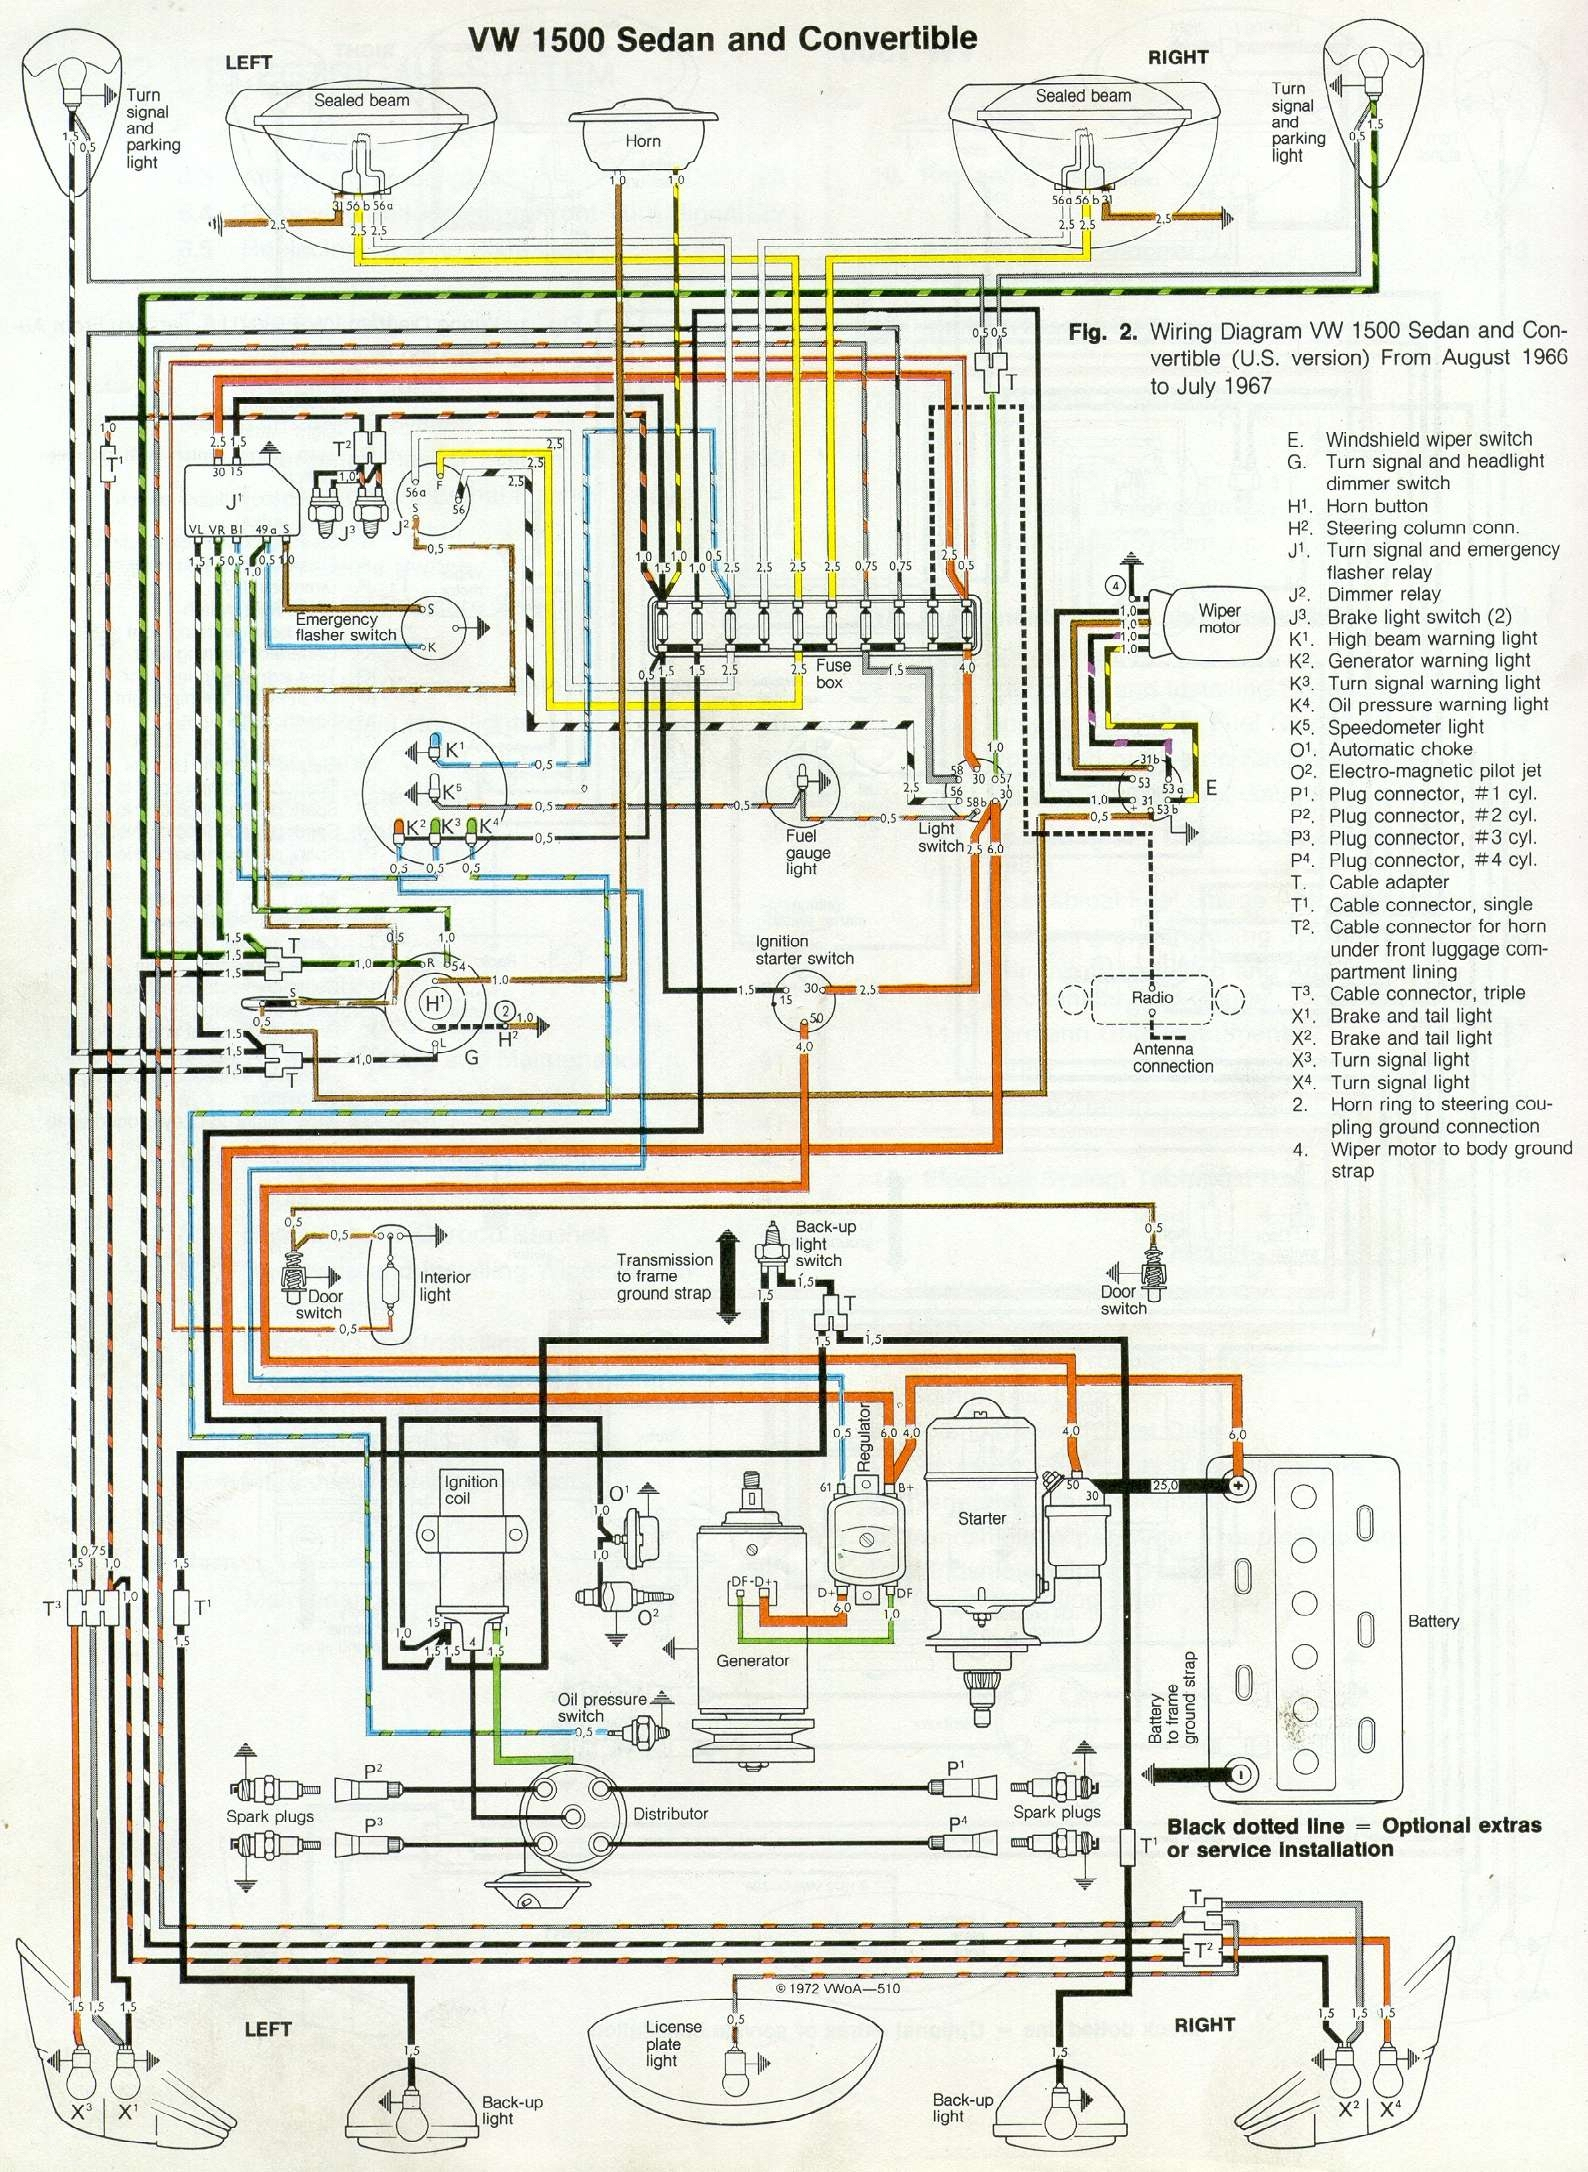 6v Vw Wiper Motor Wiring Diagram Schematic Electronic Chevy Additionally 71 Bus 66 And 67 Beetle 1967 Beetlerh1967beetle